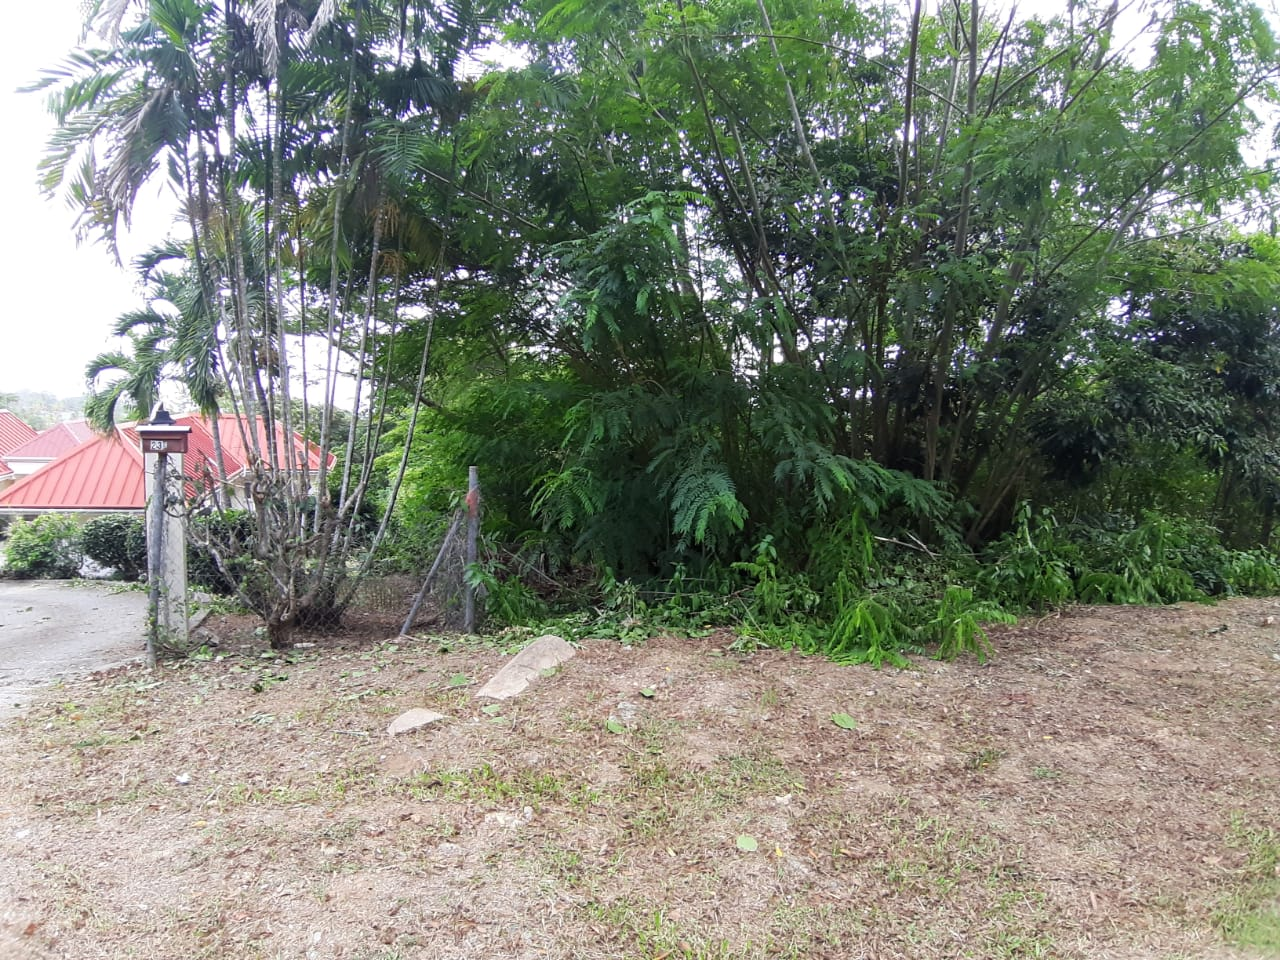 Land Sale Residential Tobago